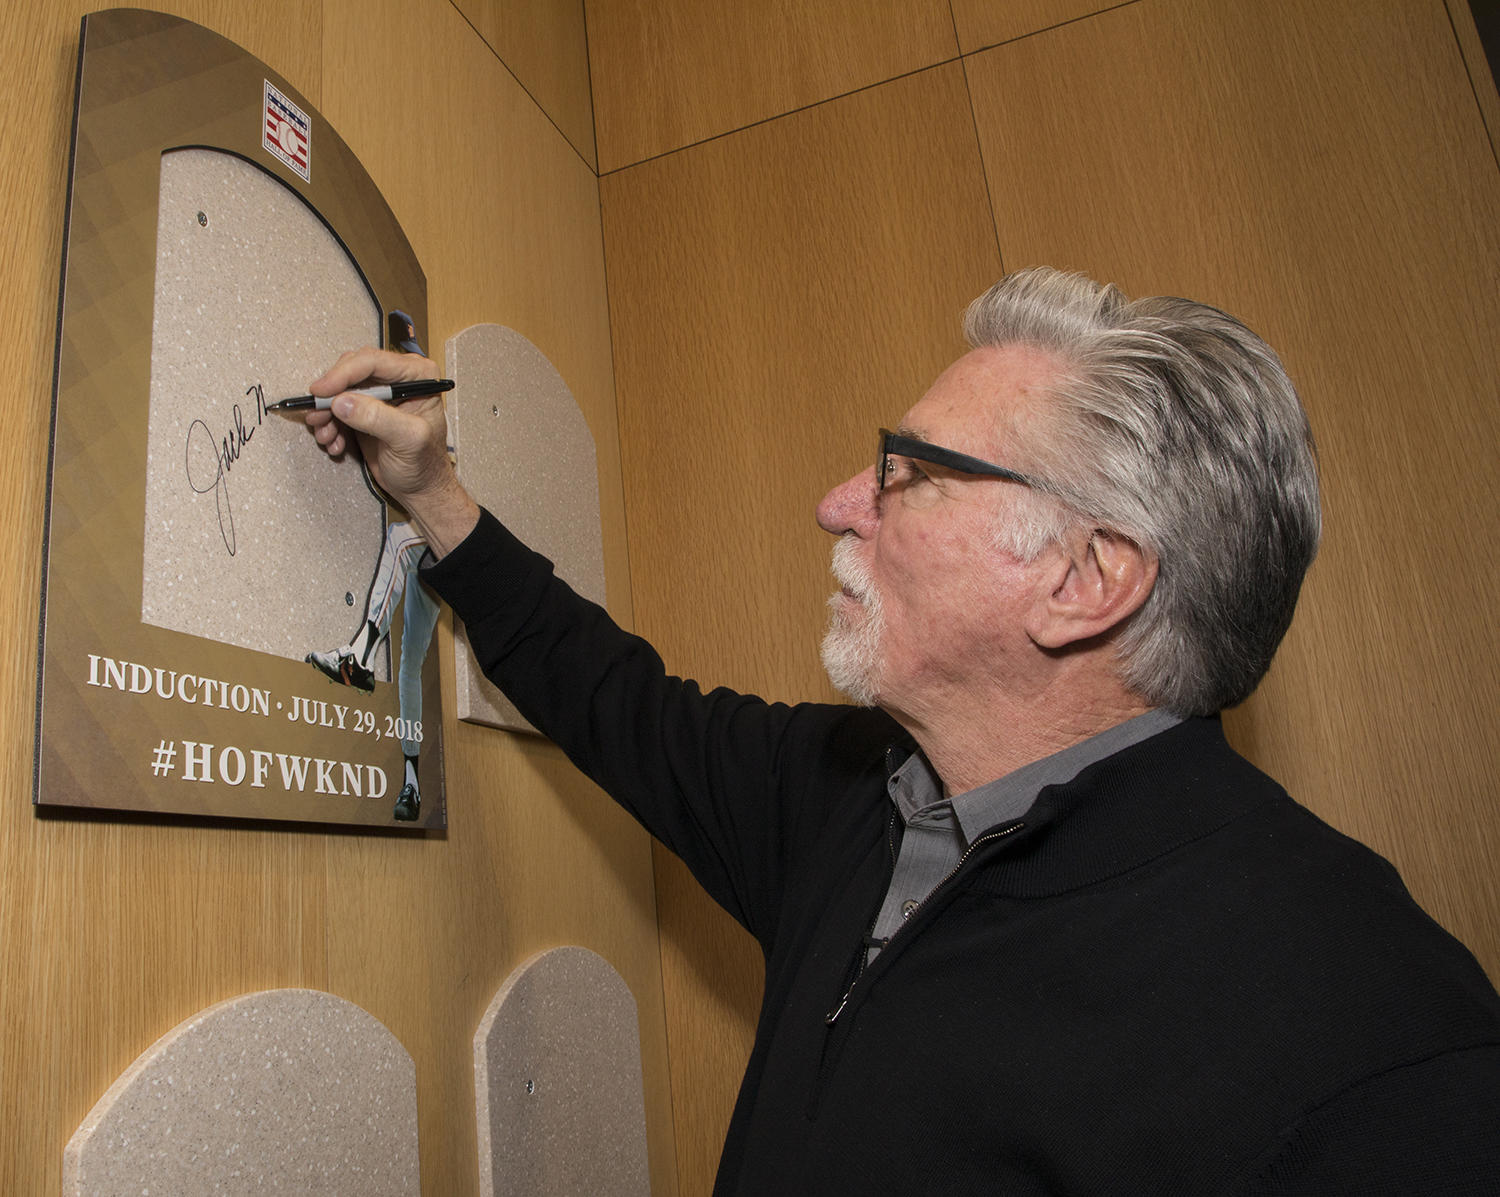 Jack Morris signs the backer where his plaque will be placed after his induction on July 29. (Milo Stewart Jr./National Baseball Hall of Fame and Museum)